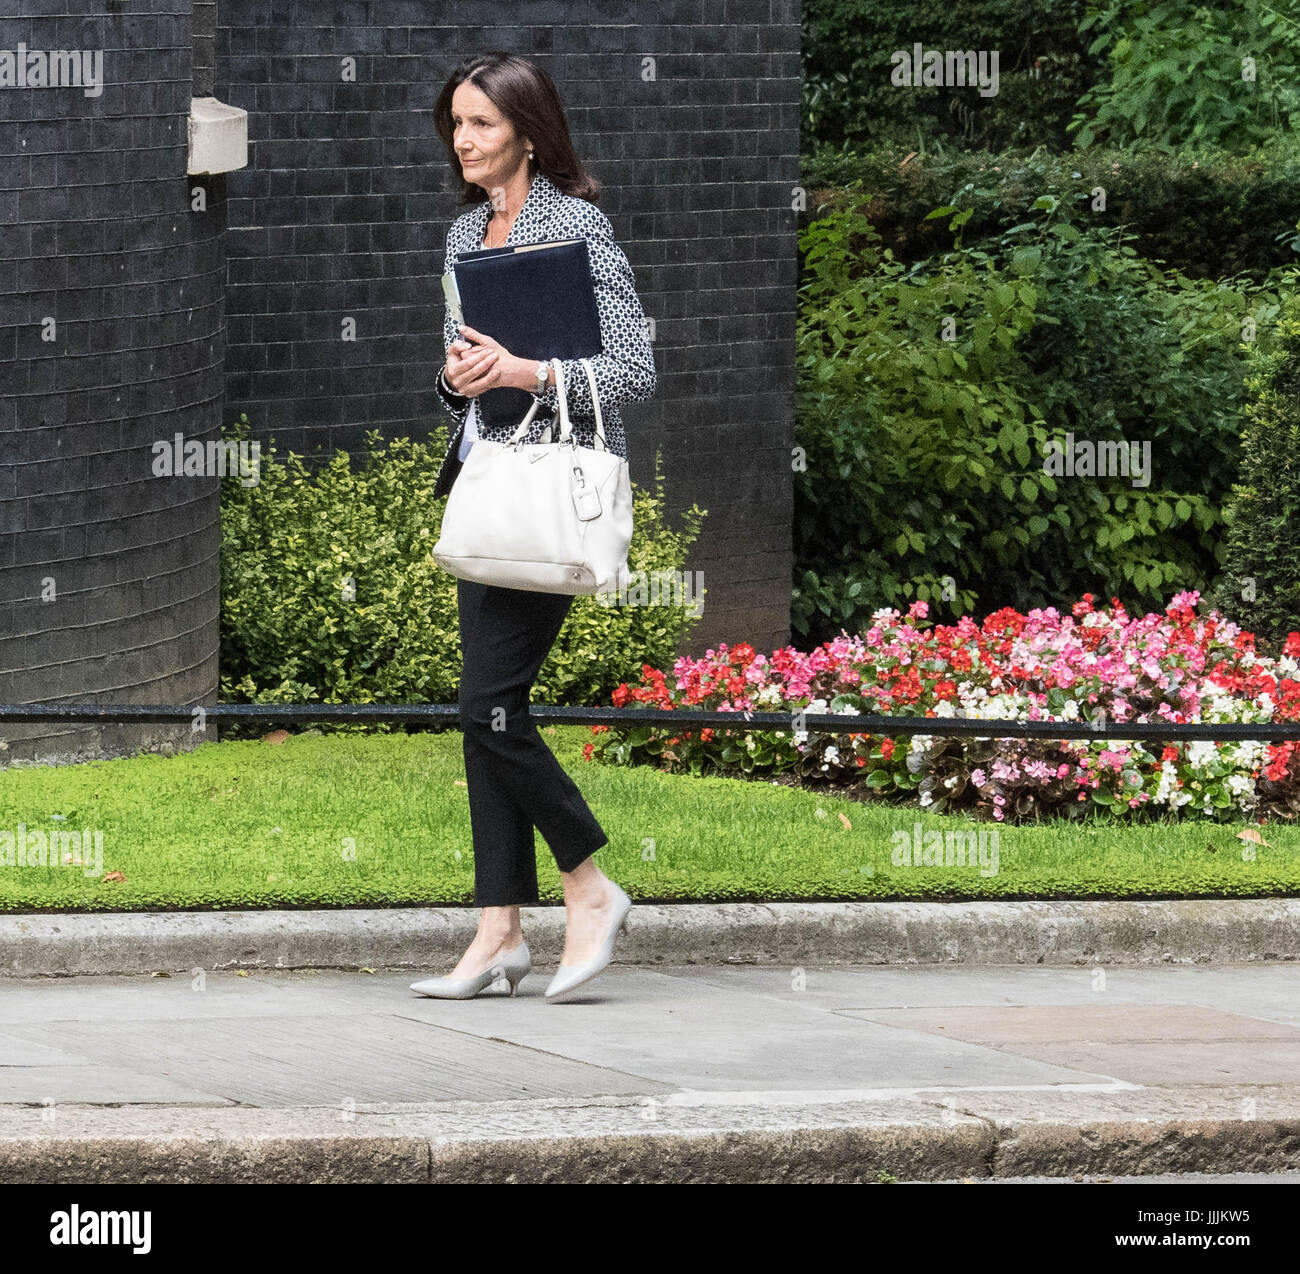 London 20th July 2017 Carolyn Fairbairn from the Confederation of British Industry, arrives at 10 Downing Street - Stock Image